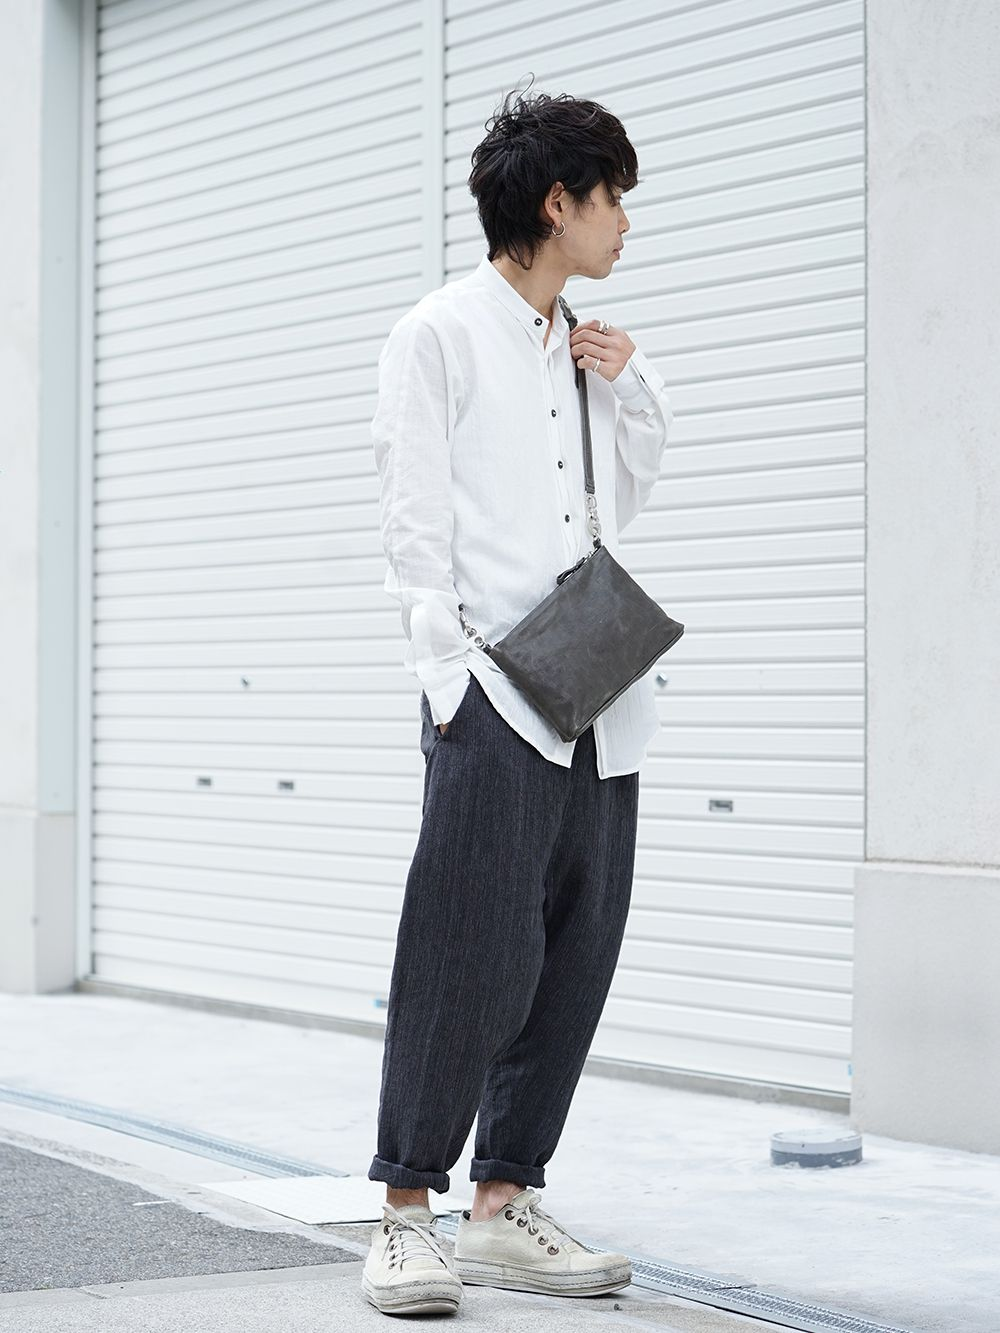 cornelian taurus 19-20 AW Collection 1st Delivery - 2-005